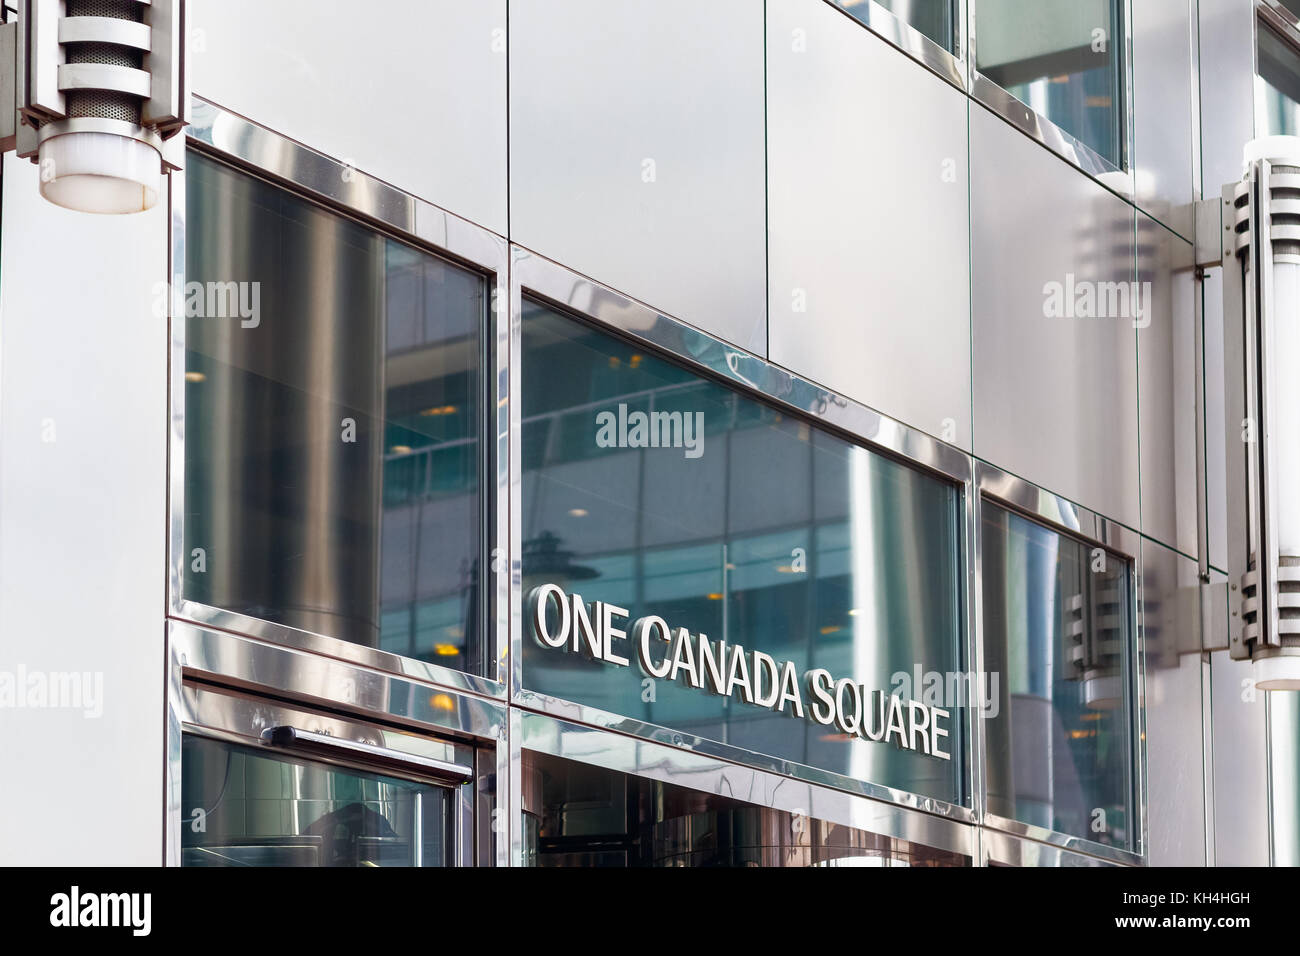 London, UK - November 24, 2017 - Sign of One Canada Square, a skyscraper in Canary Wharf - Stock Image